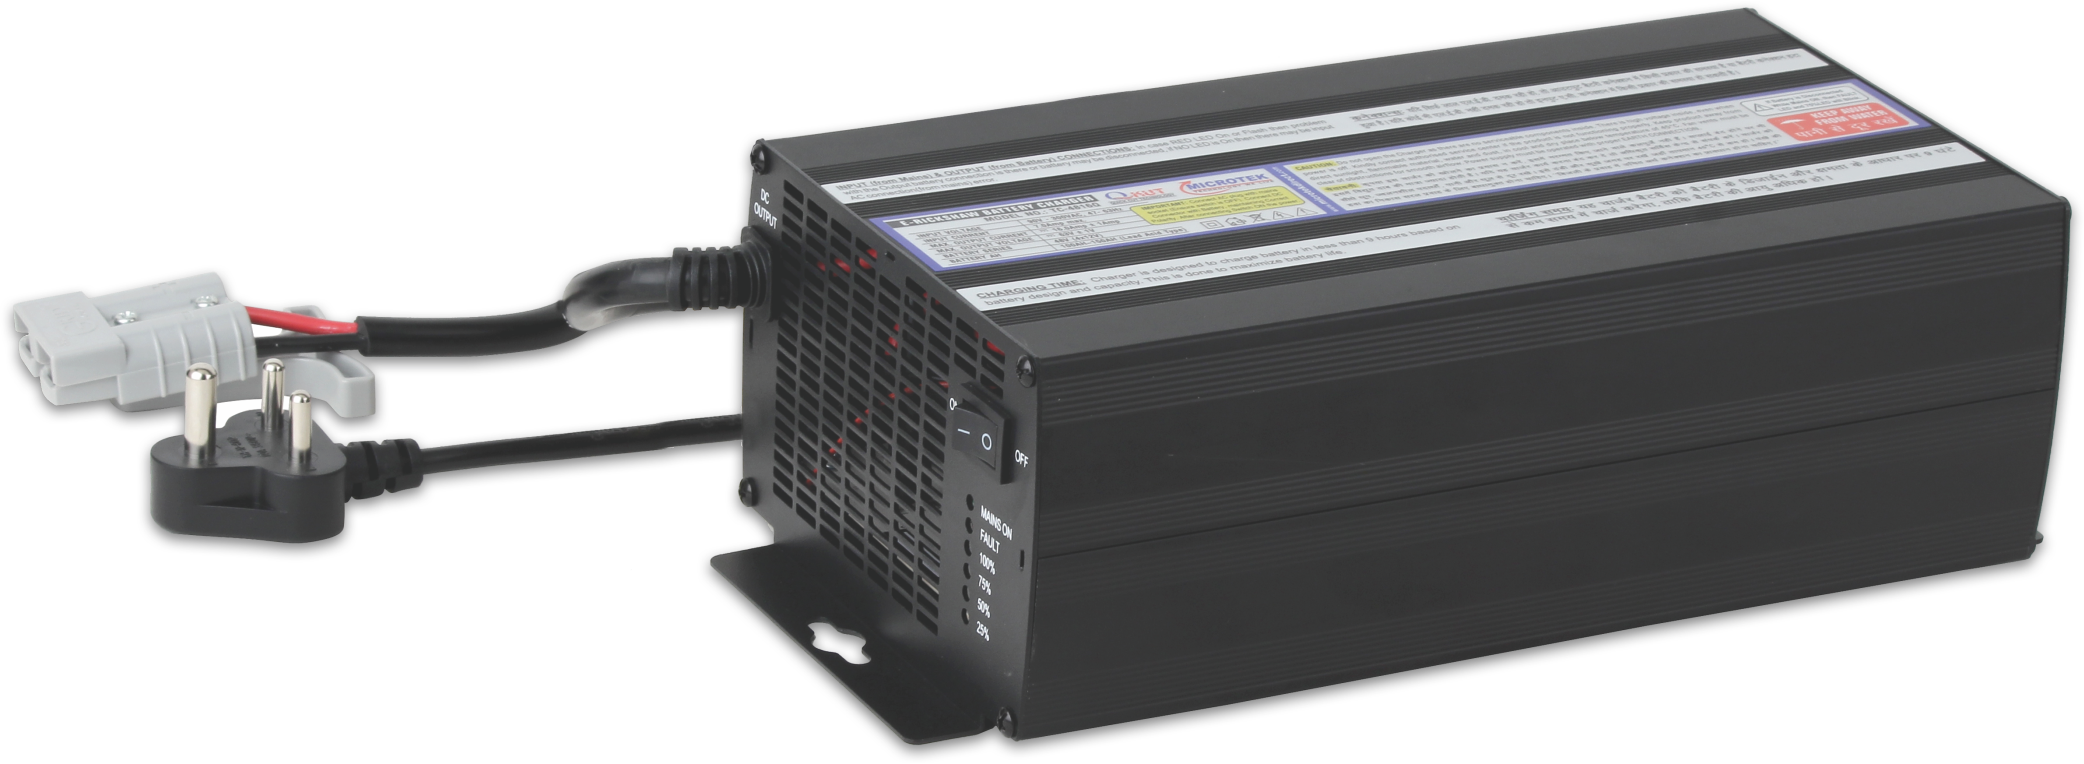 E-RICKSHAW CHARGER - TC 4816Q (INDUSTRIAL CHARGER)